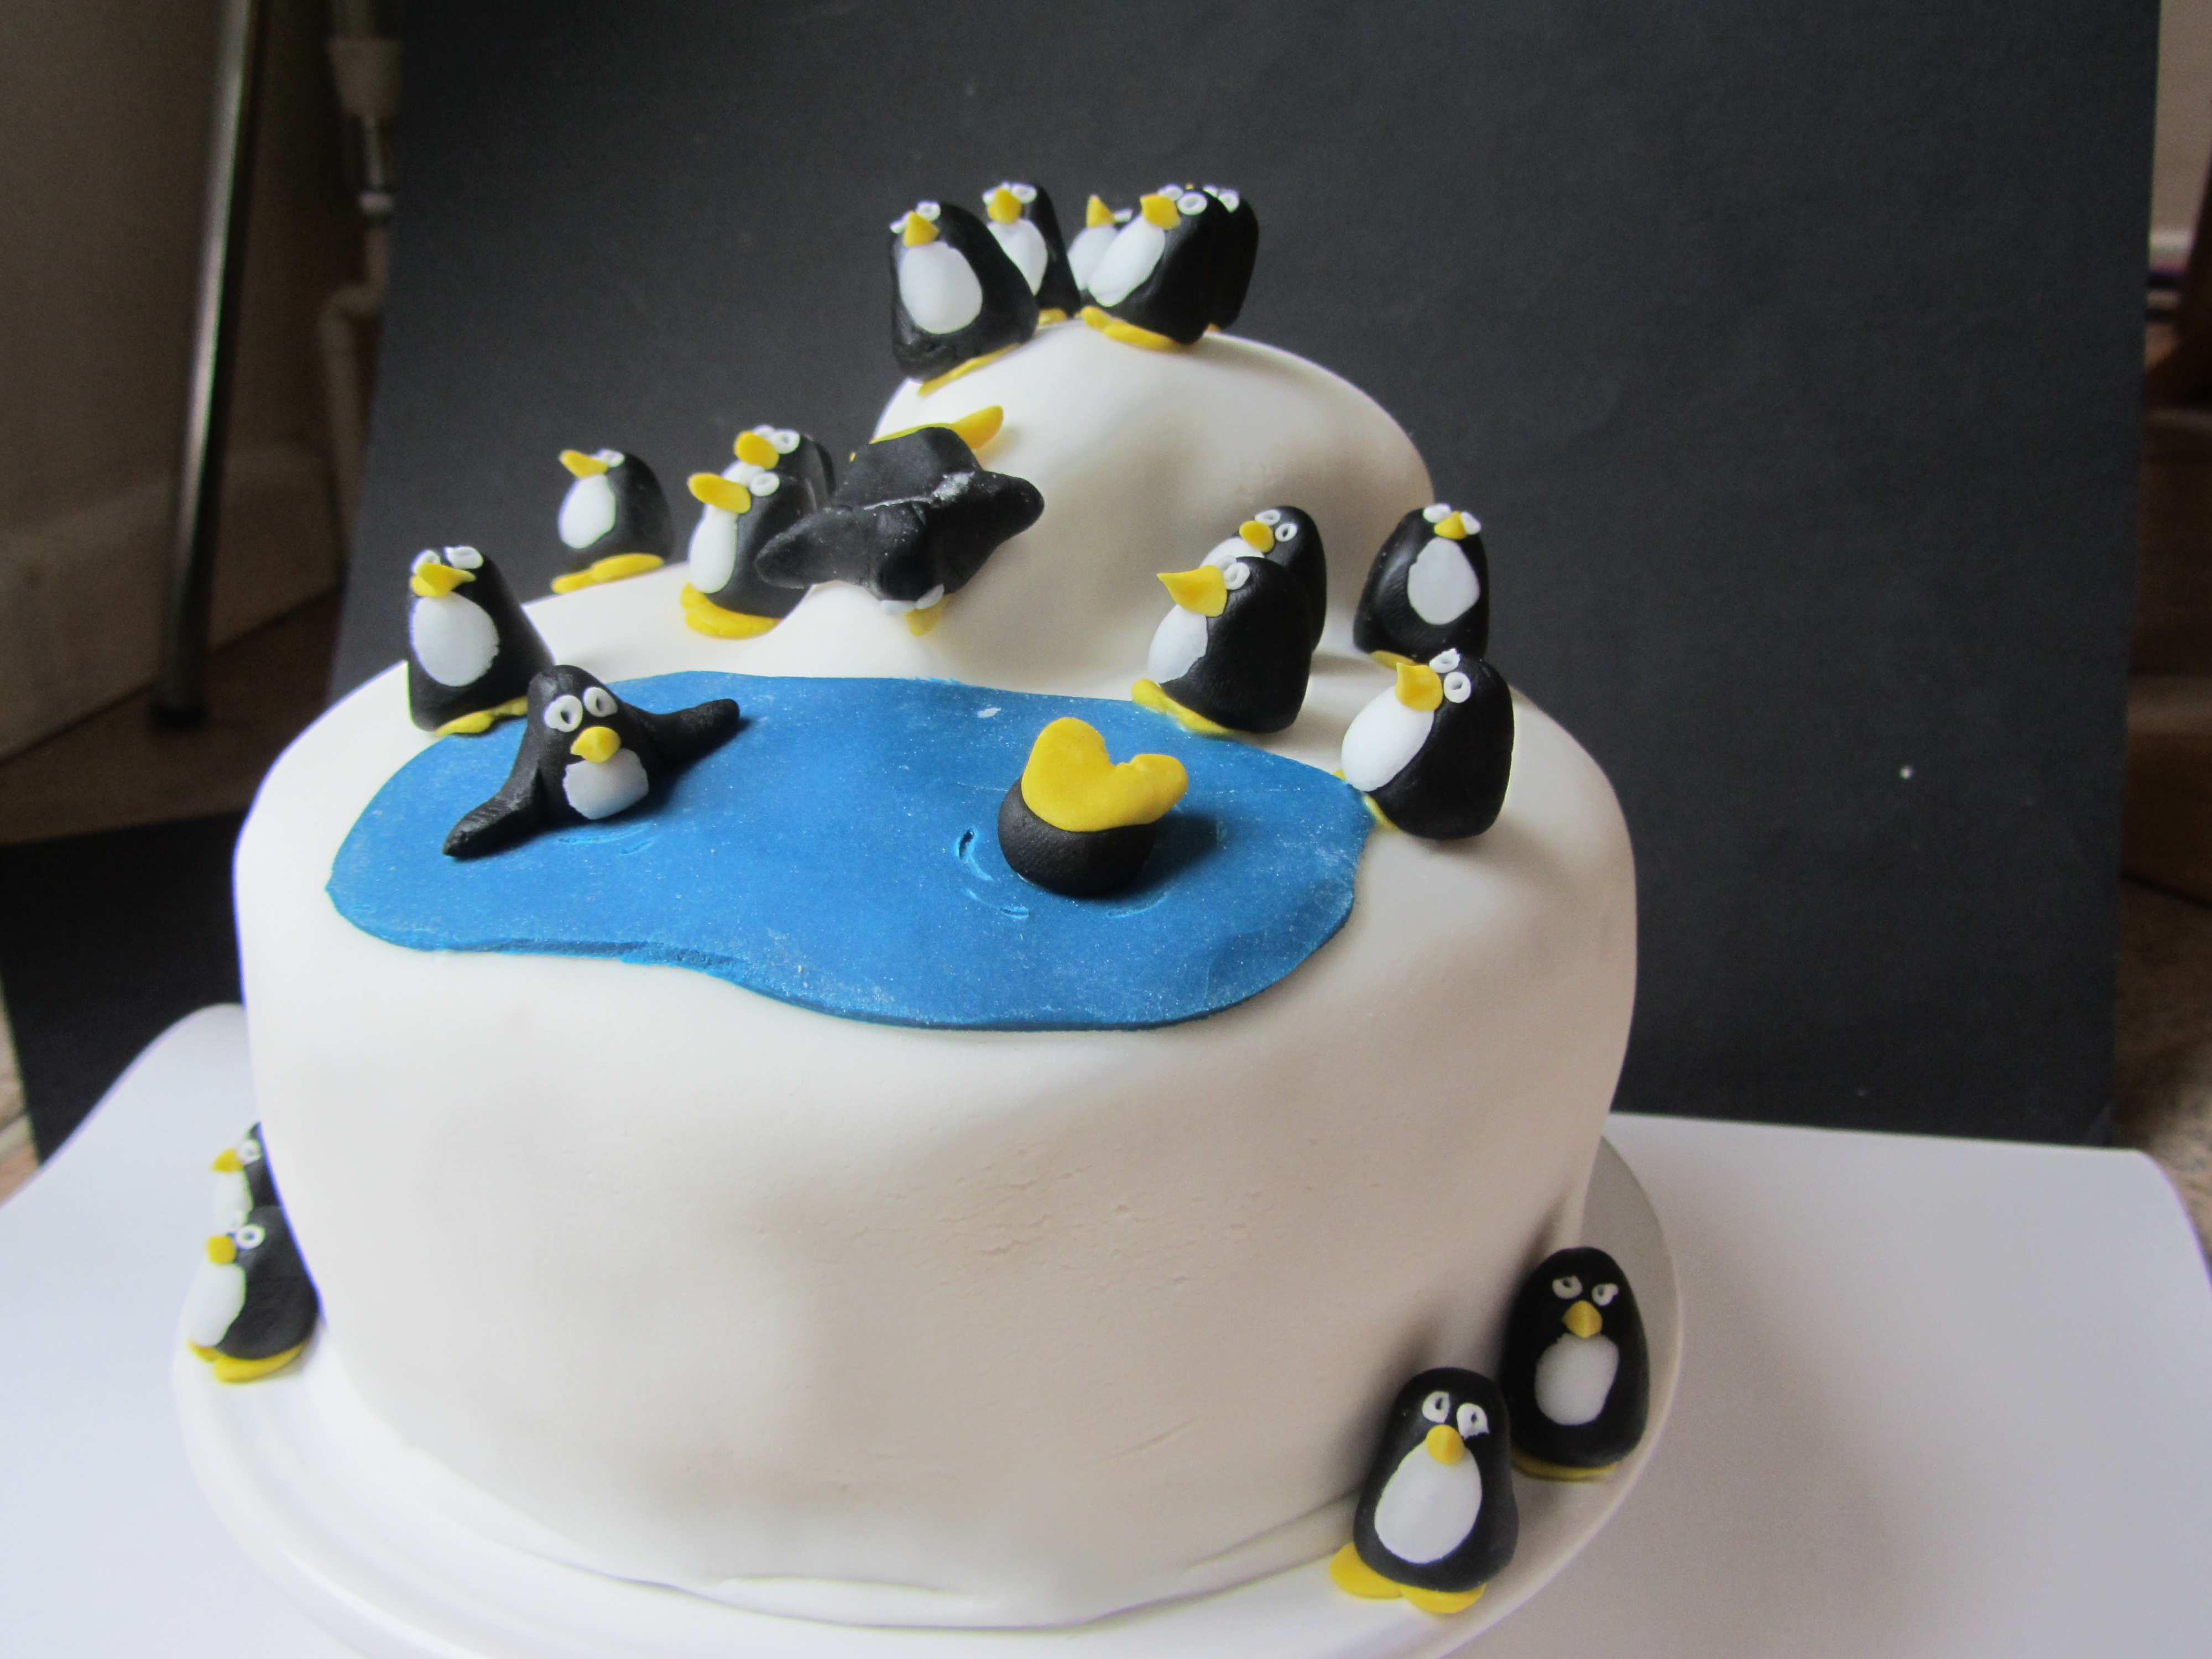 Who Can I Get To Make A Penguin Brithday Cake